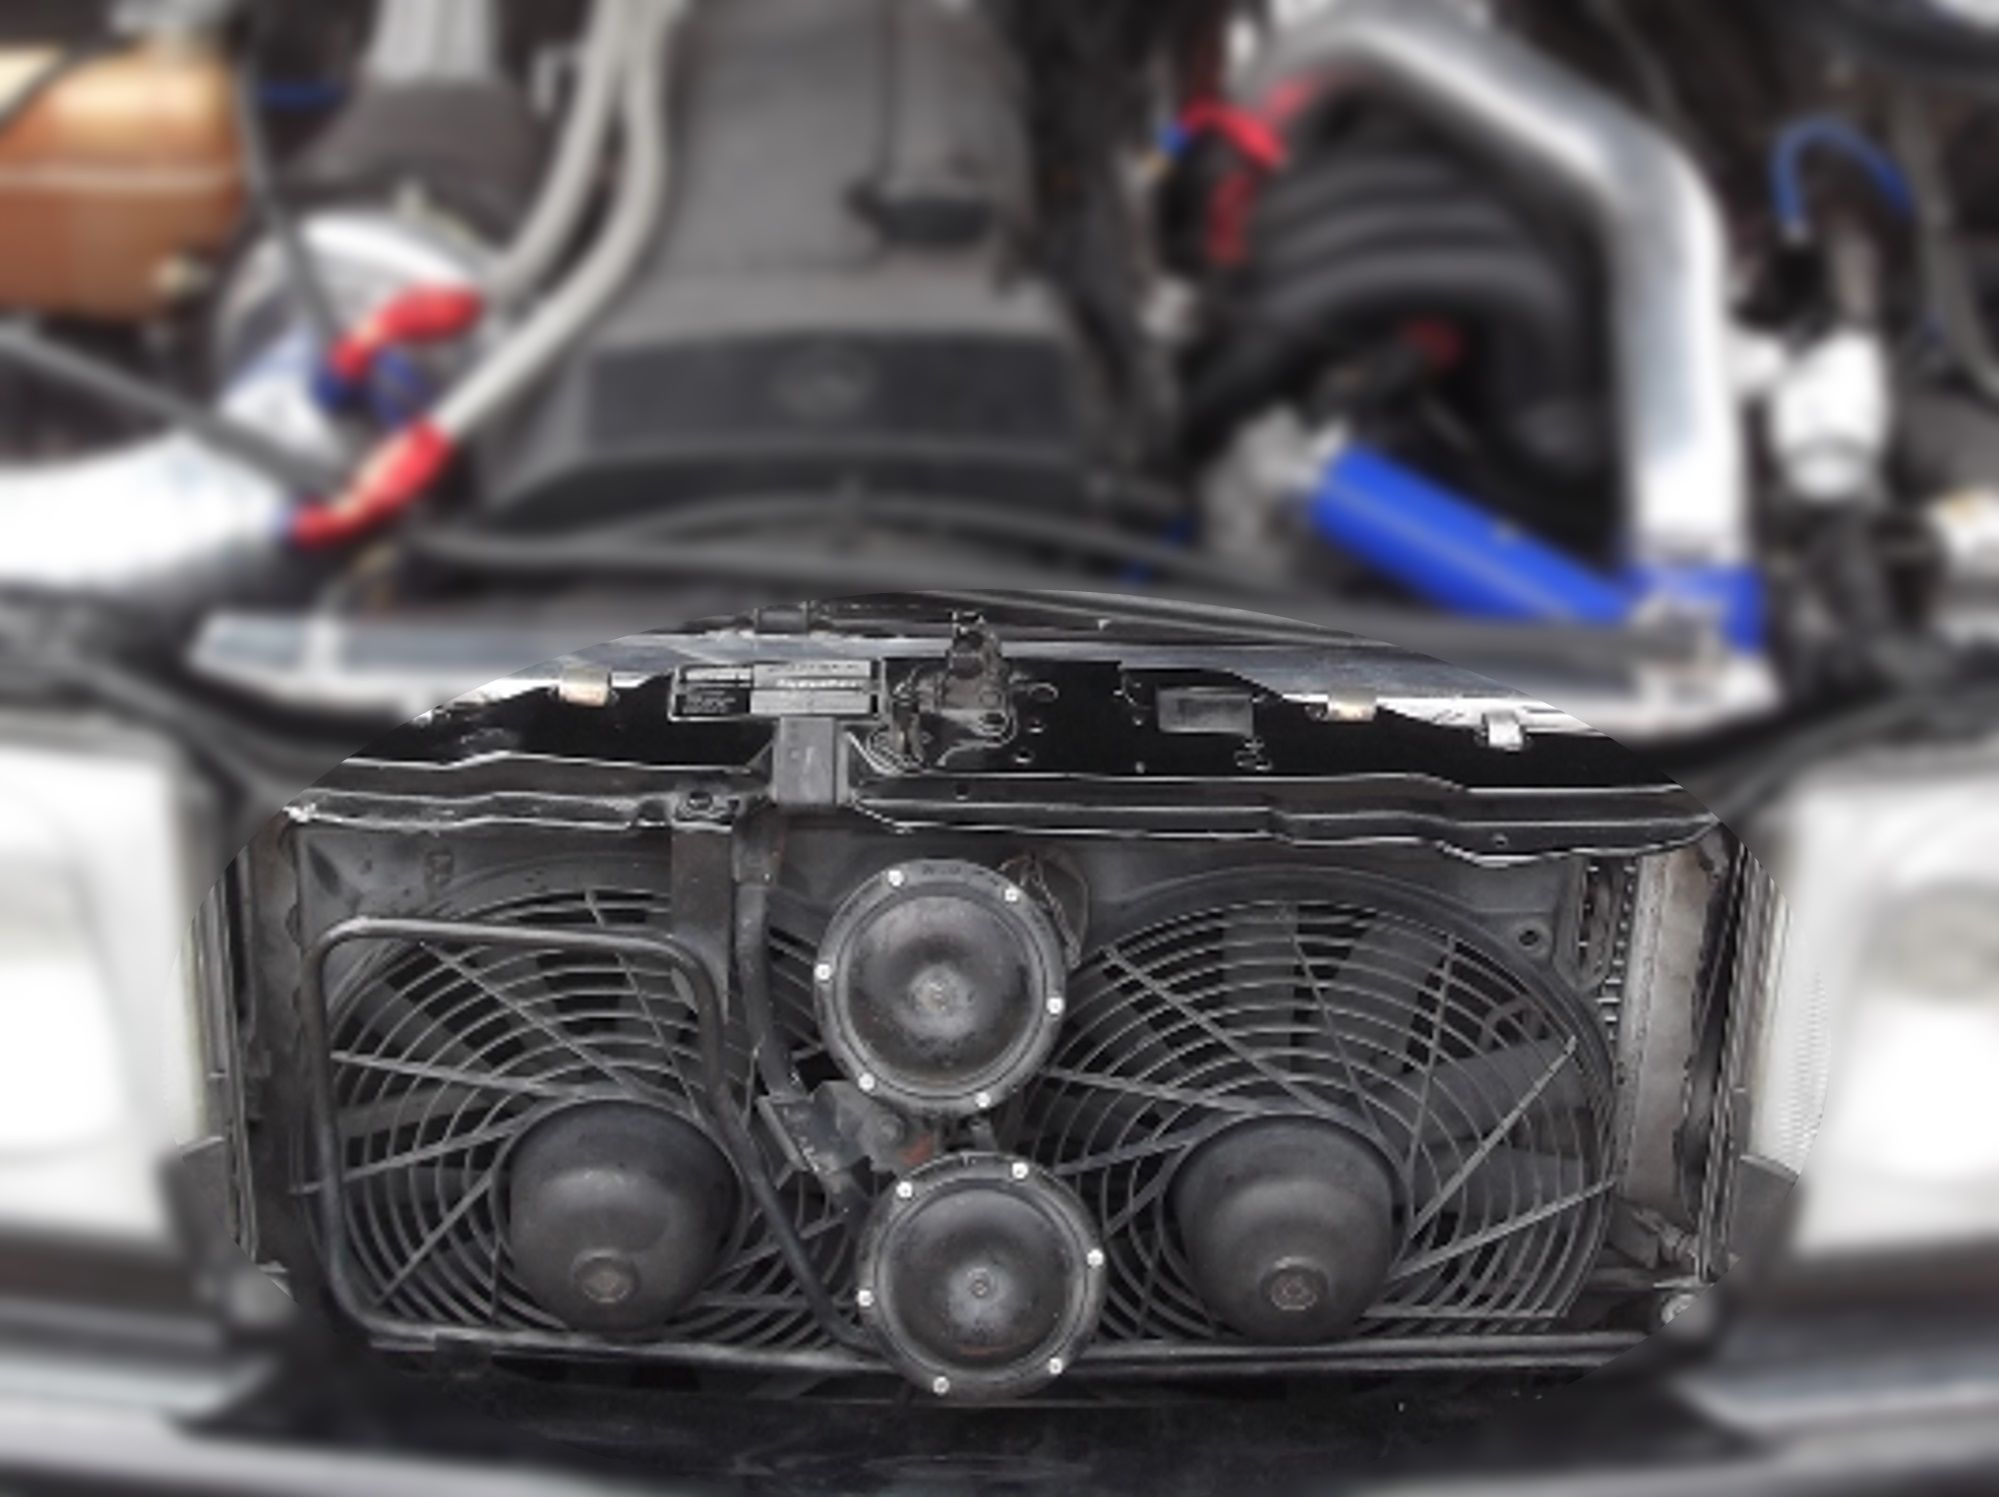 Troubleshooting Common Condenser Fan Problems